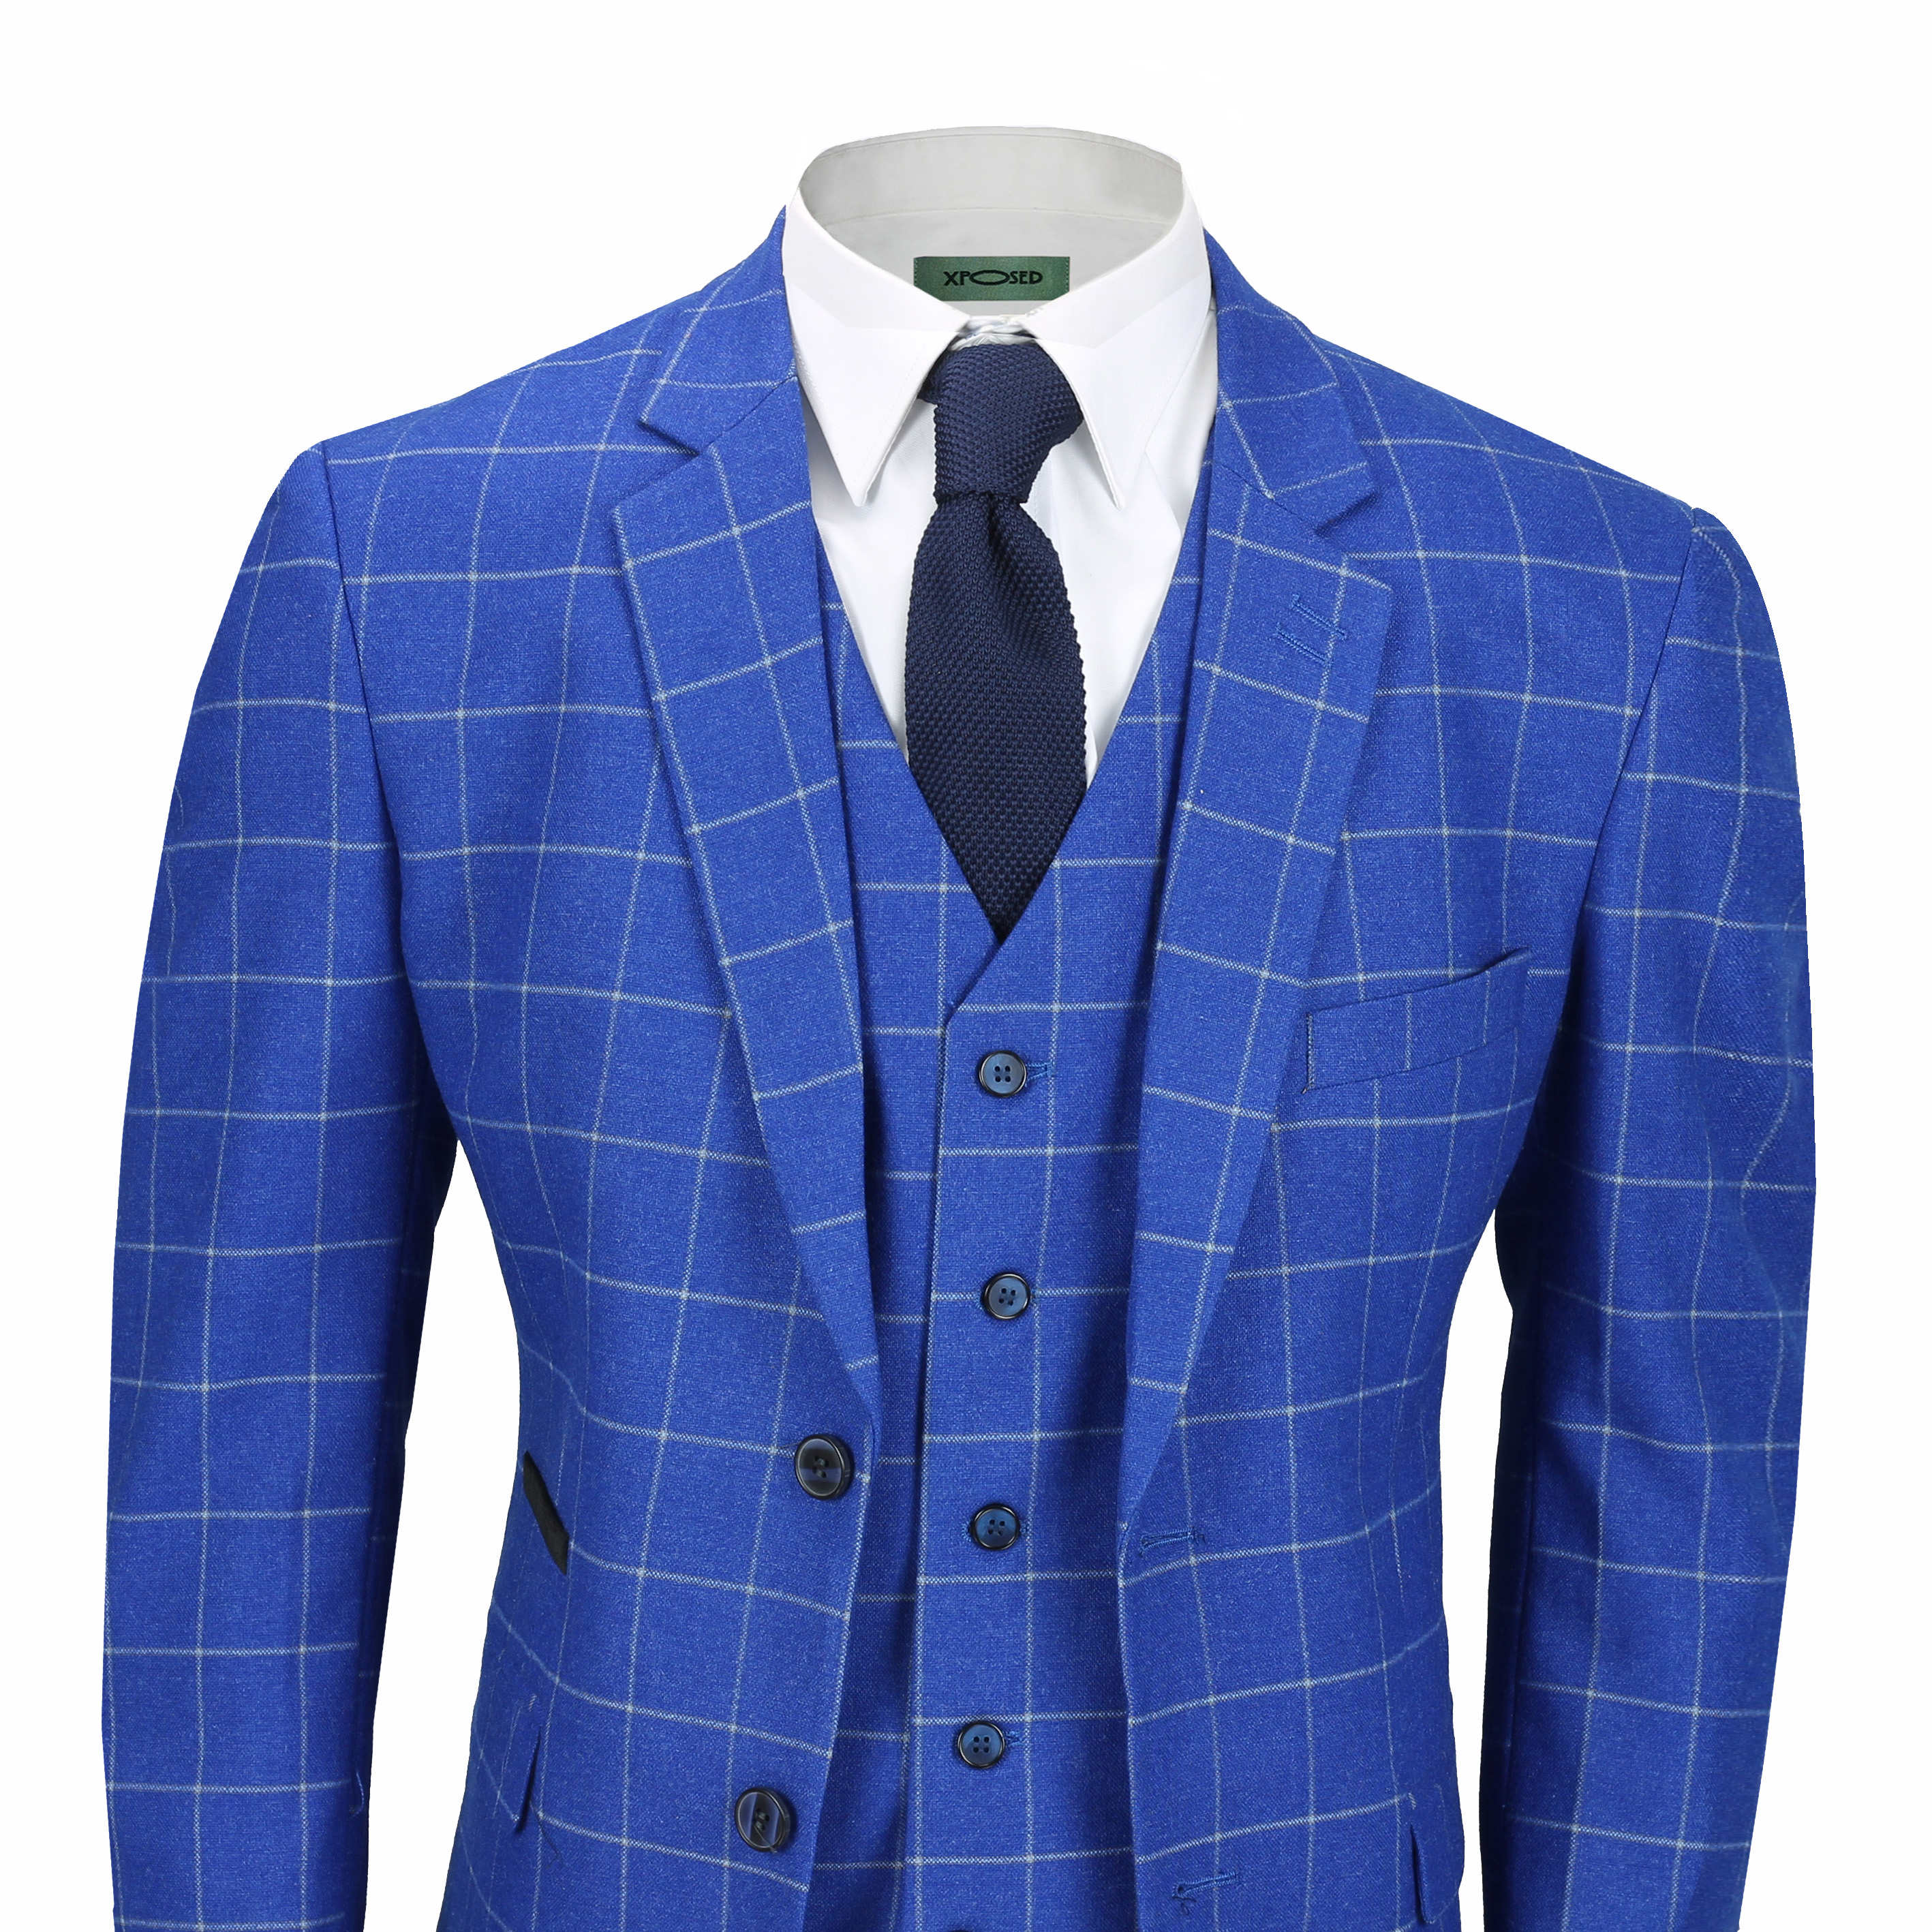 45e400a61 Mens Vintage Tweed White on Blue Check Tailored Fit 3 Piece Suit with  Waistcoat?